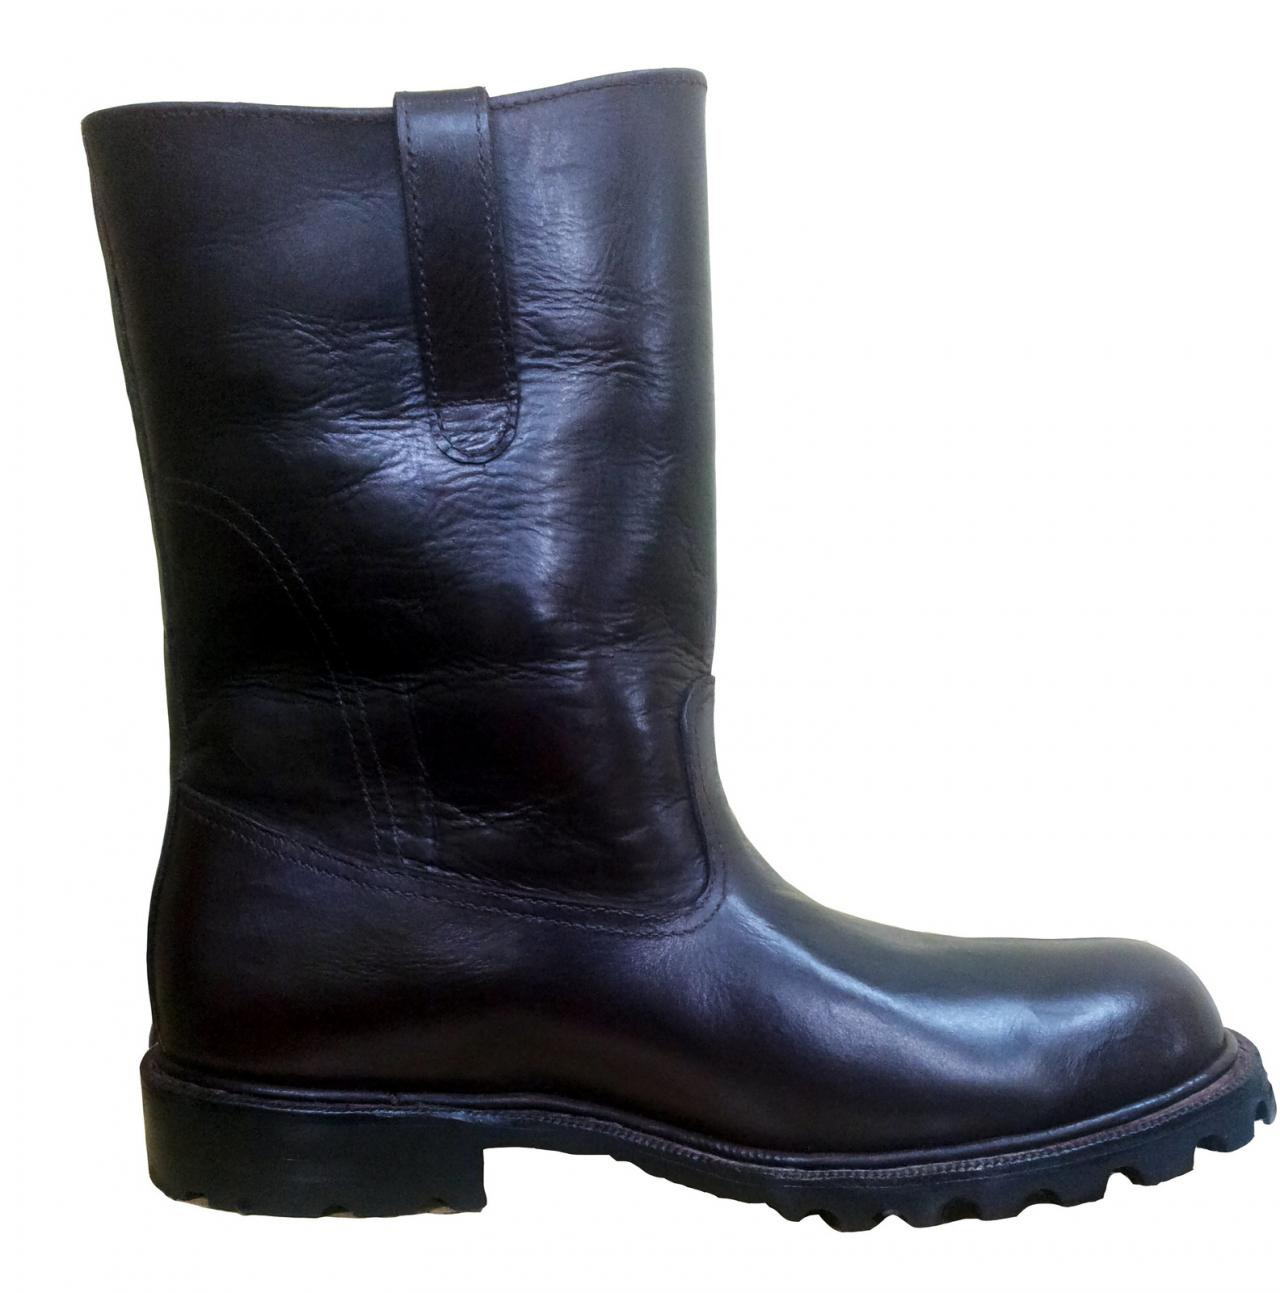 New Handmade Safety Real Leather Boots with Steel Toe and Rubber Sole, fireproof